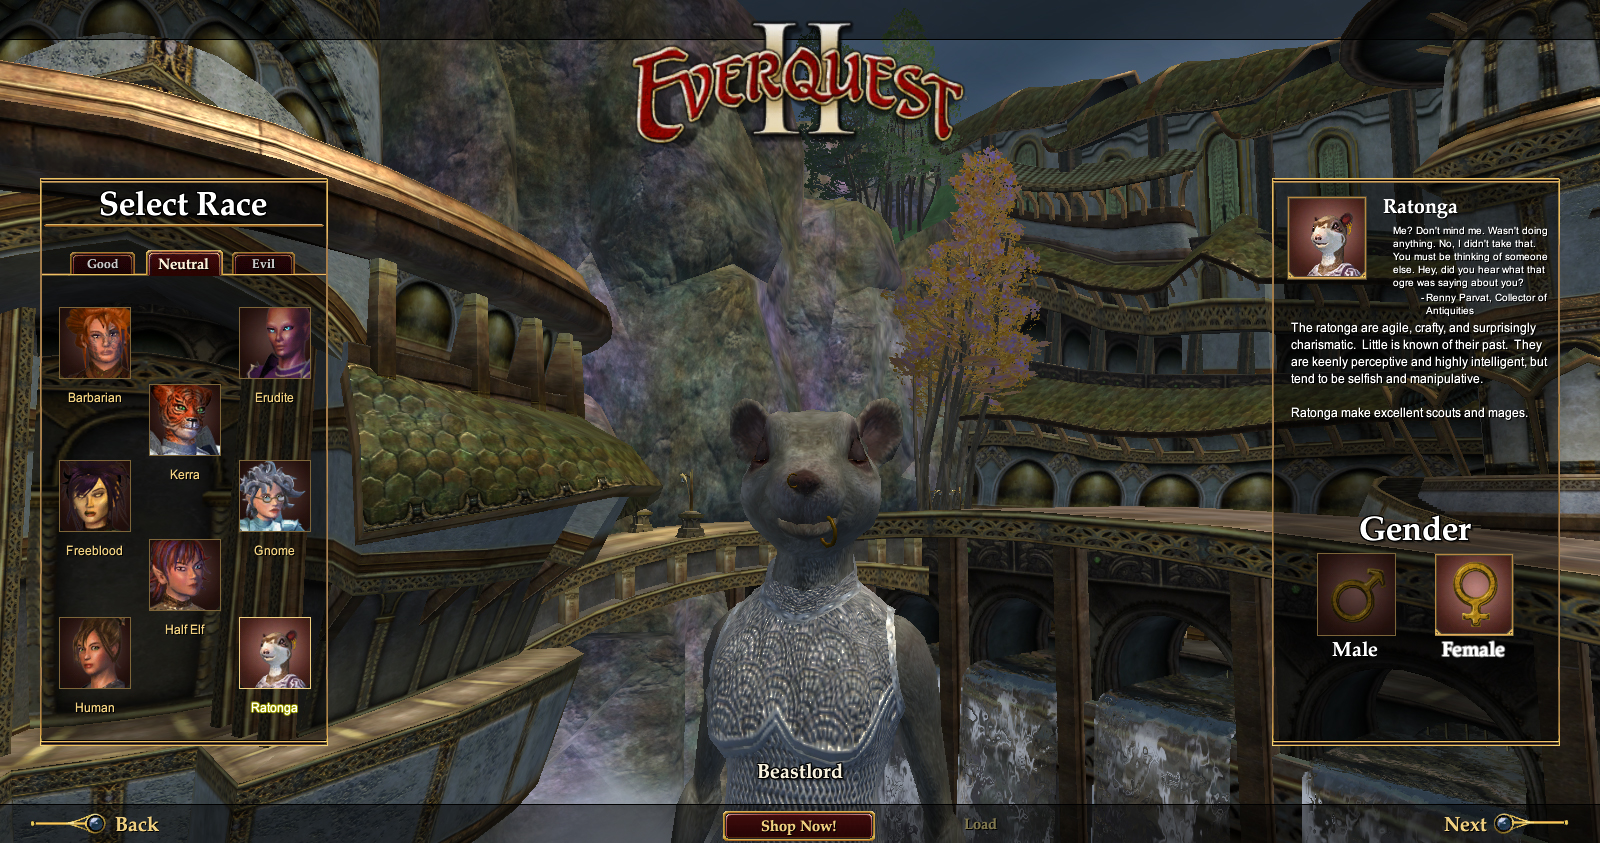 Everquest II: Destiny of Velious Бистлорд